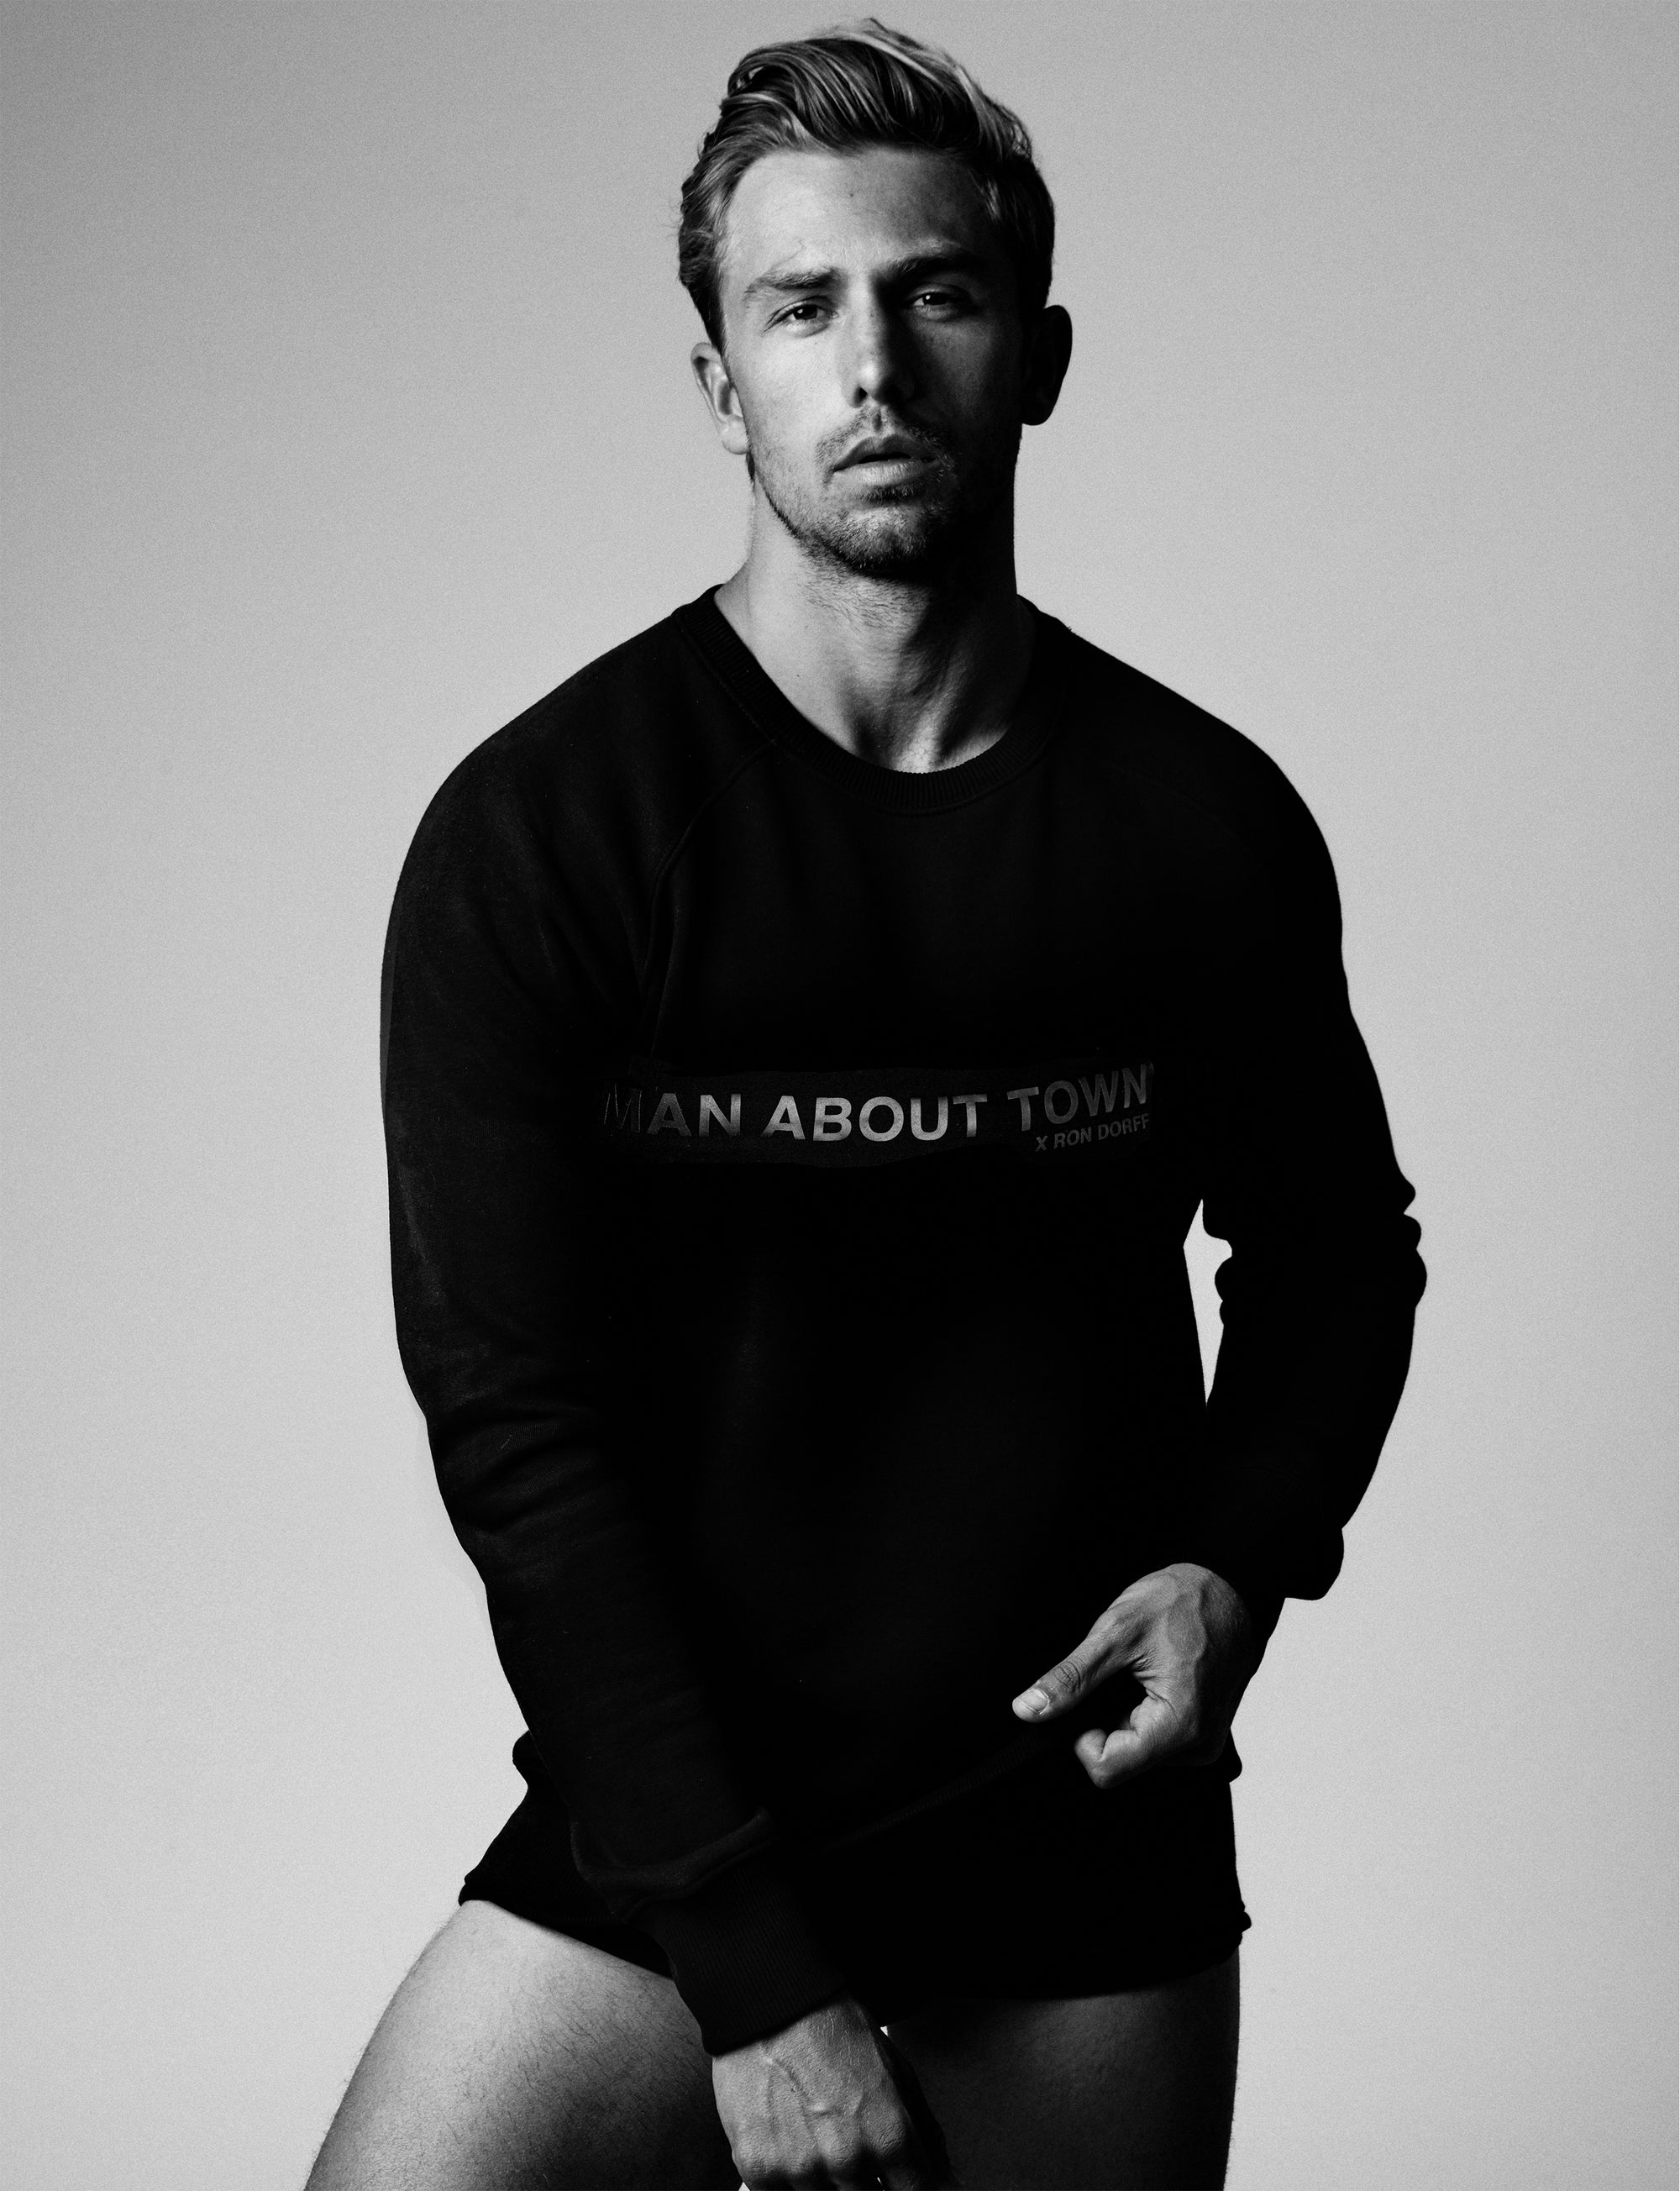 Limited Edition Man About Town Sweatshirt - Black on Black